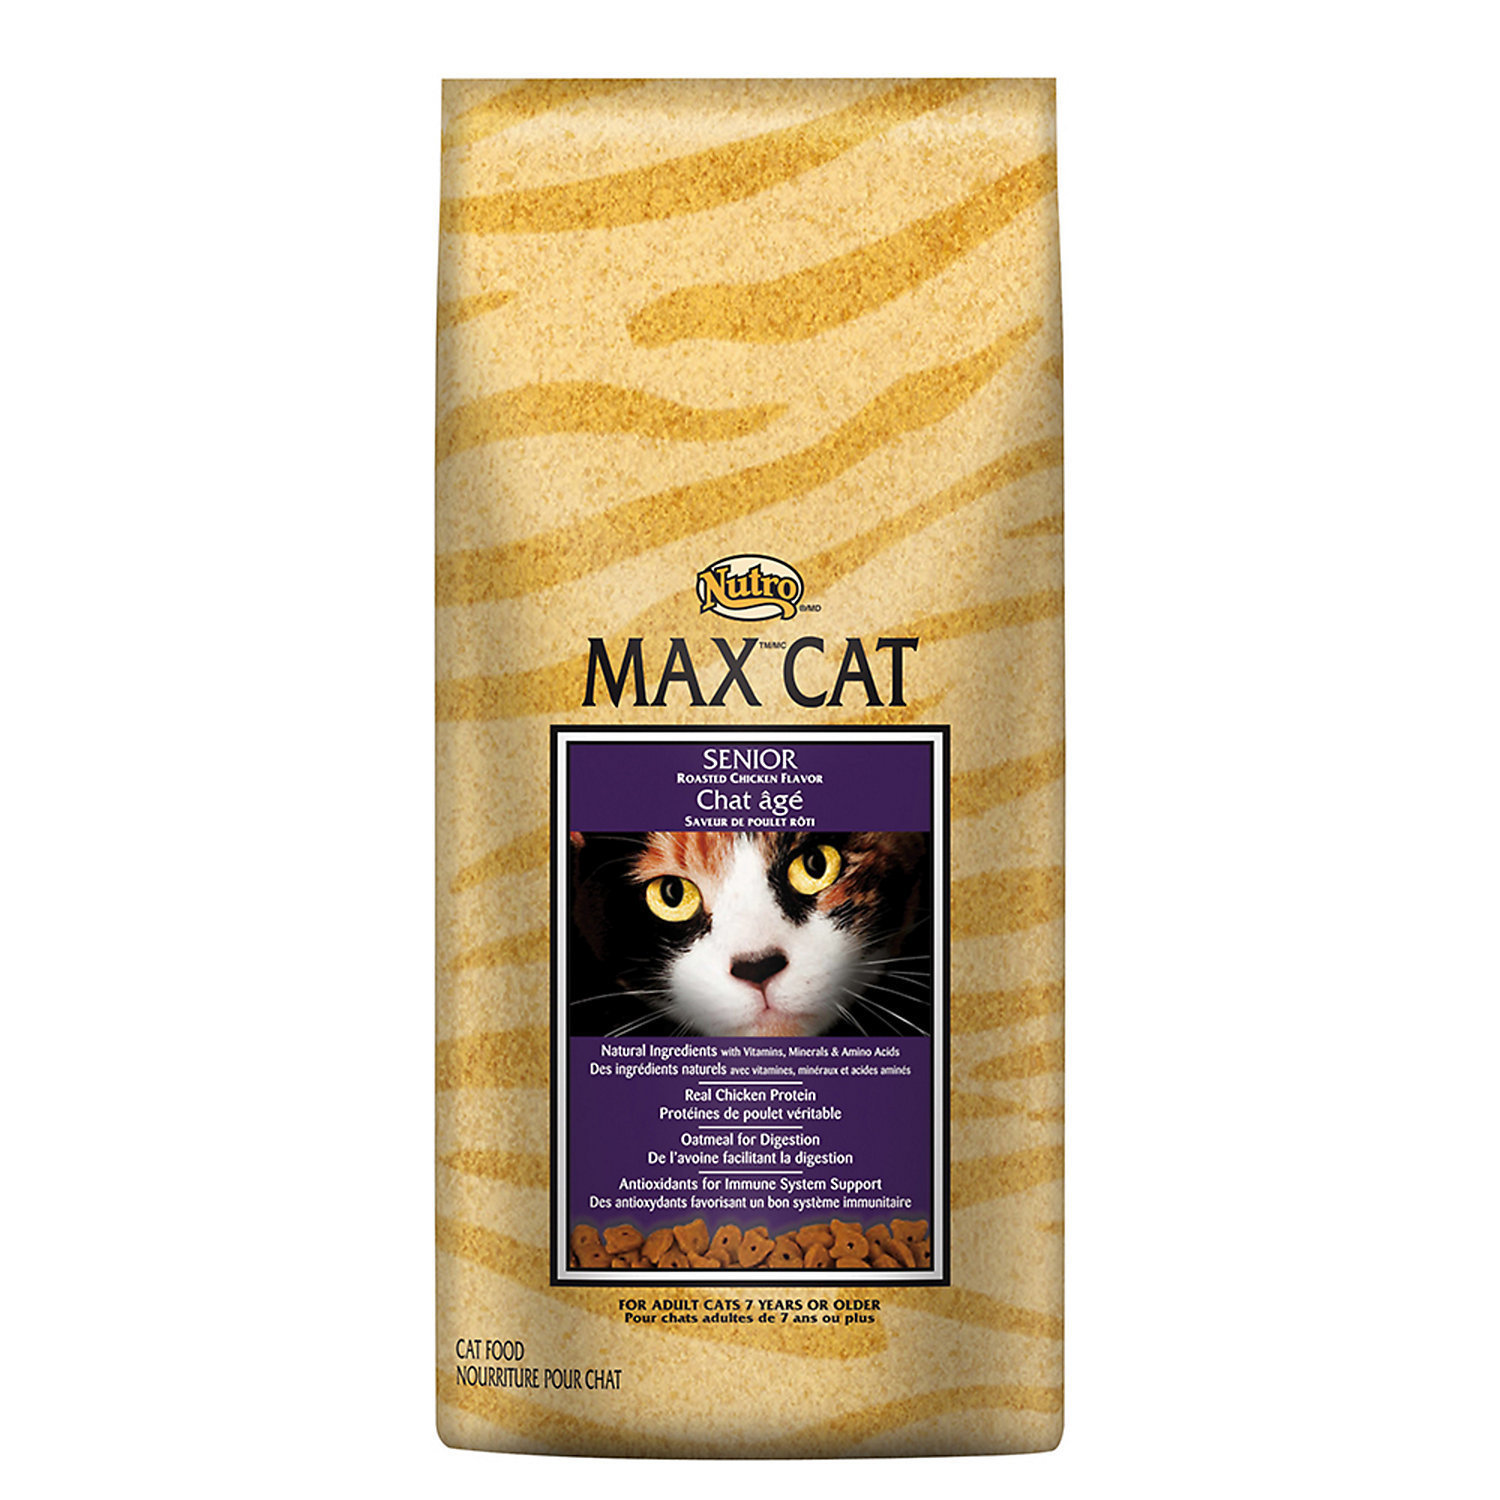 MAX CAT Senior Cat Food - Roasted Chicken Flavor (6 lbs.; Chicken) (12/18) (A.J1)